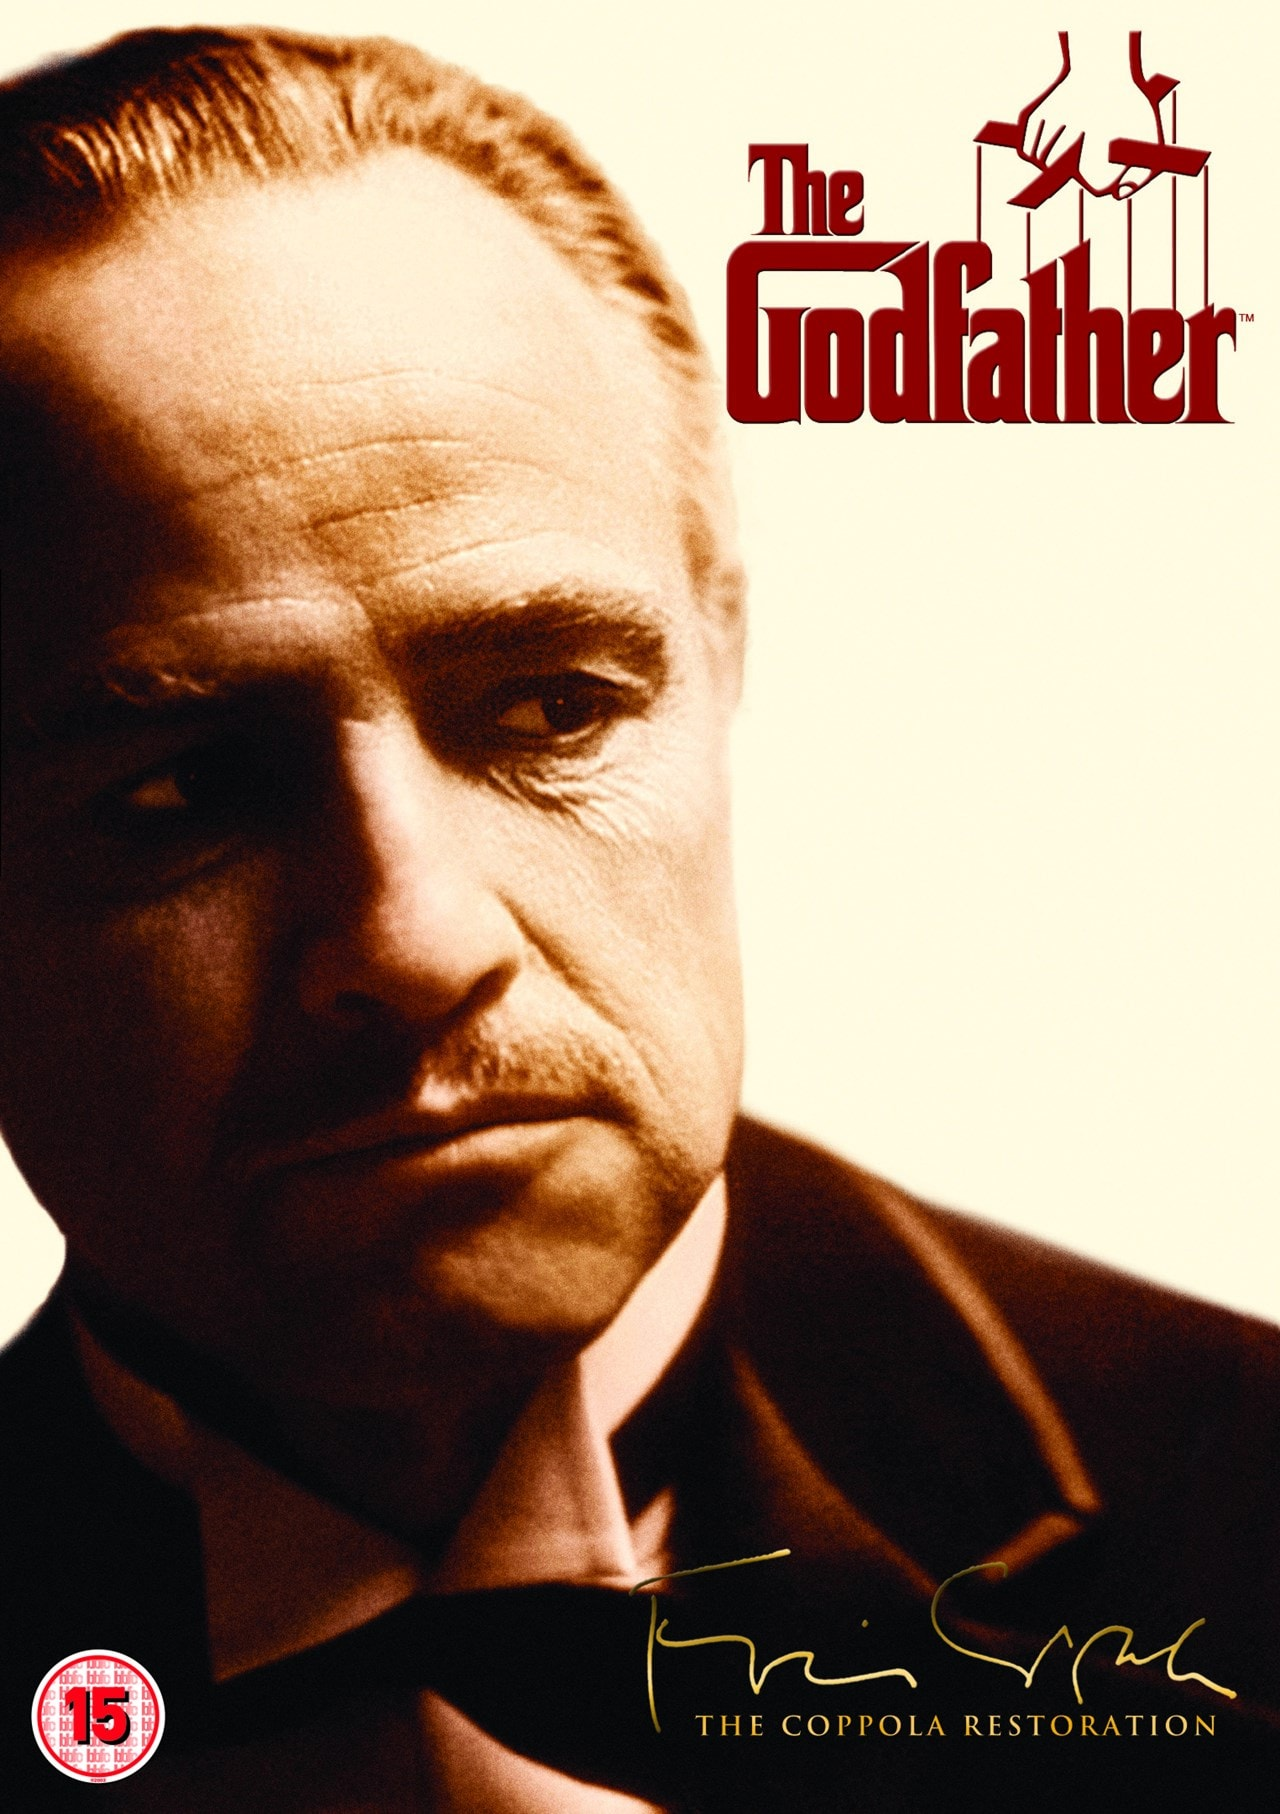 The Godfather - 1